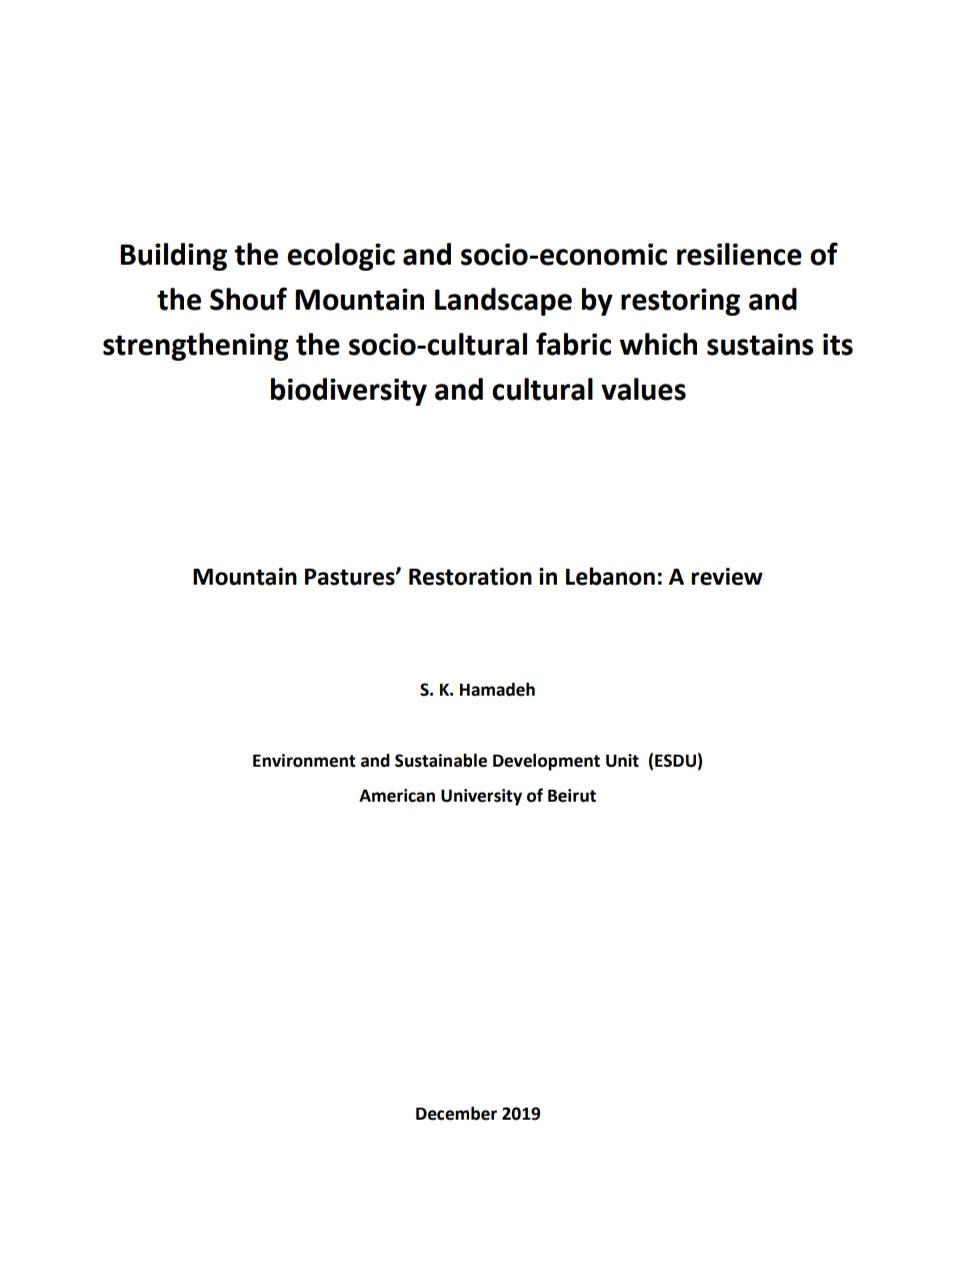 Mountain Pastures' Restoration in Lebanon: A review